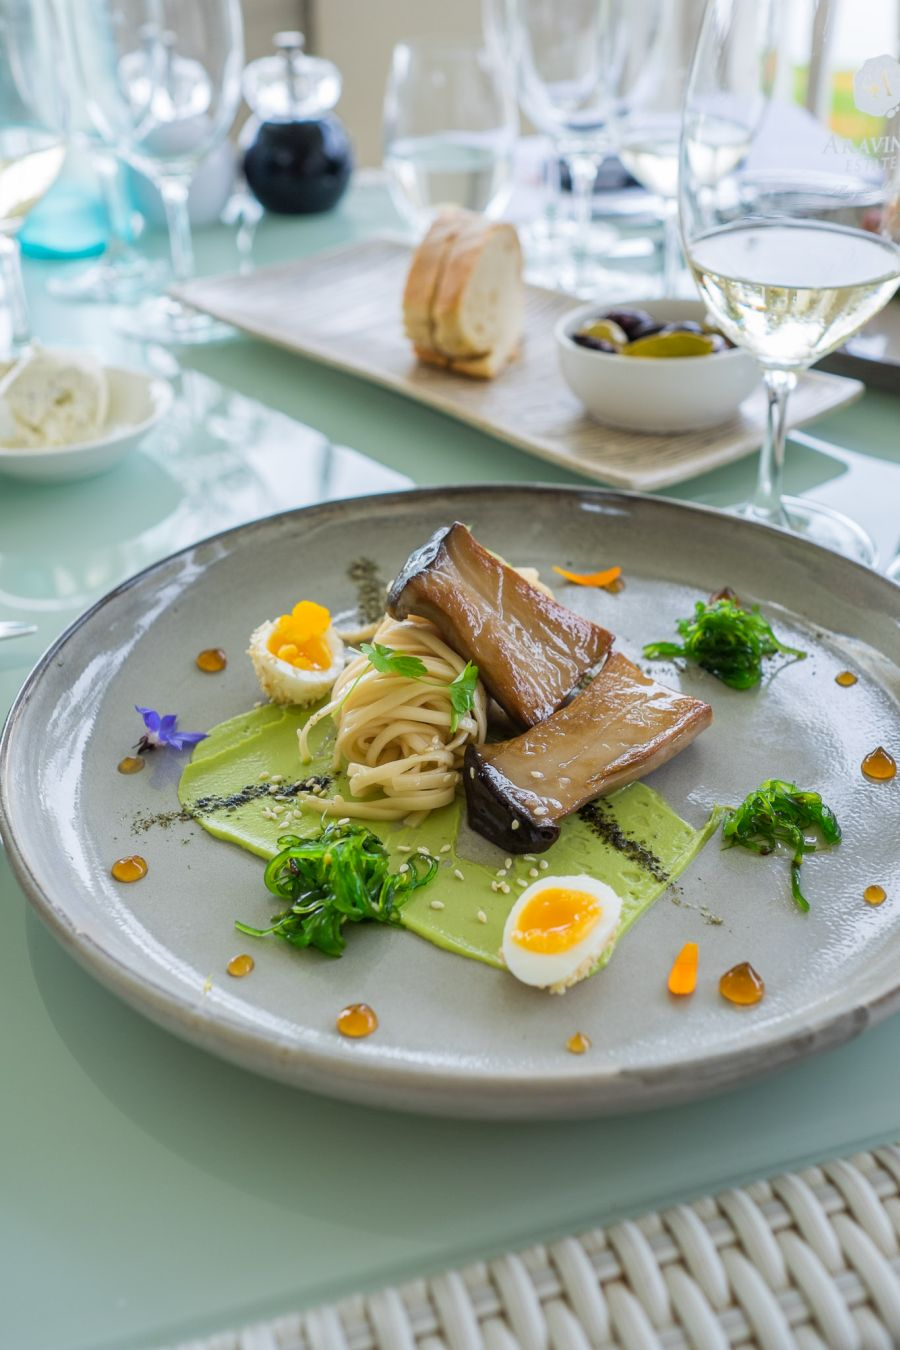 Sandra's vegetarian delight, with king oyster mushroom, noodles, avocado, sesame quail egg, wakame and soy gel